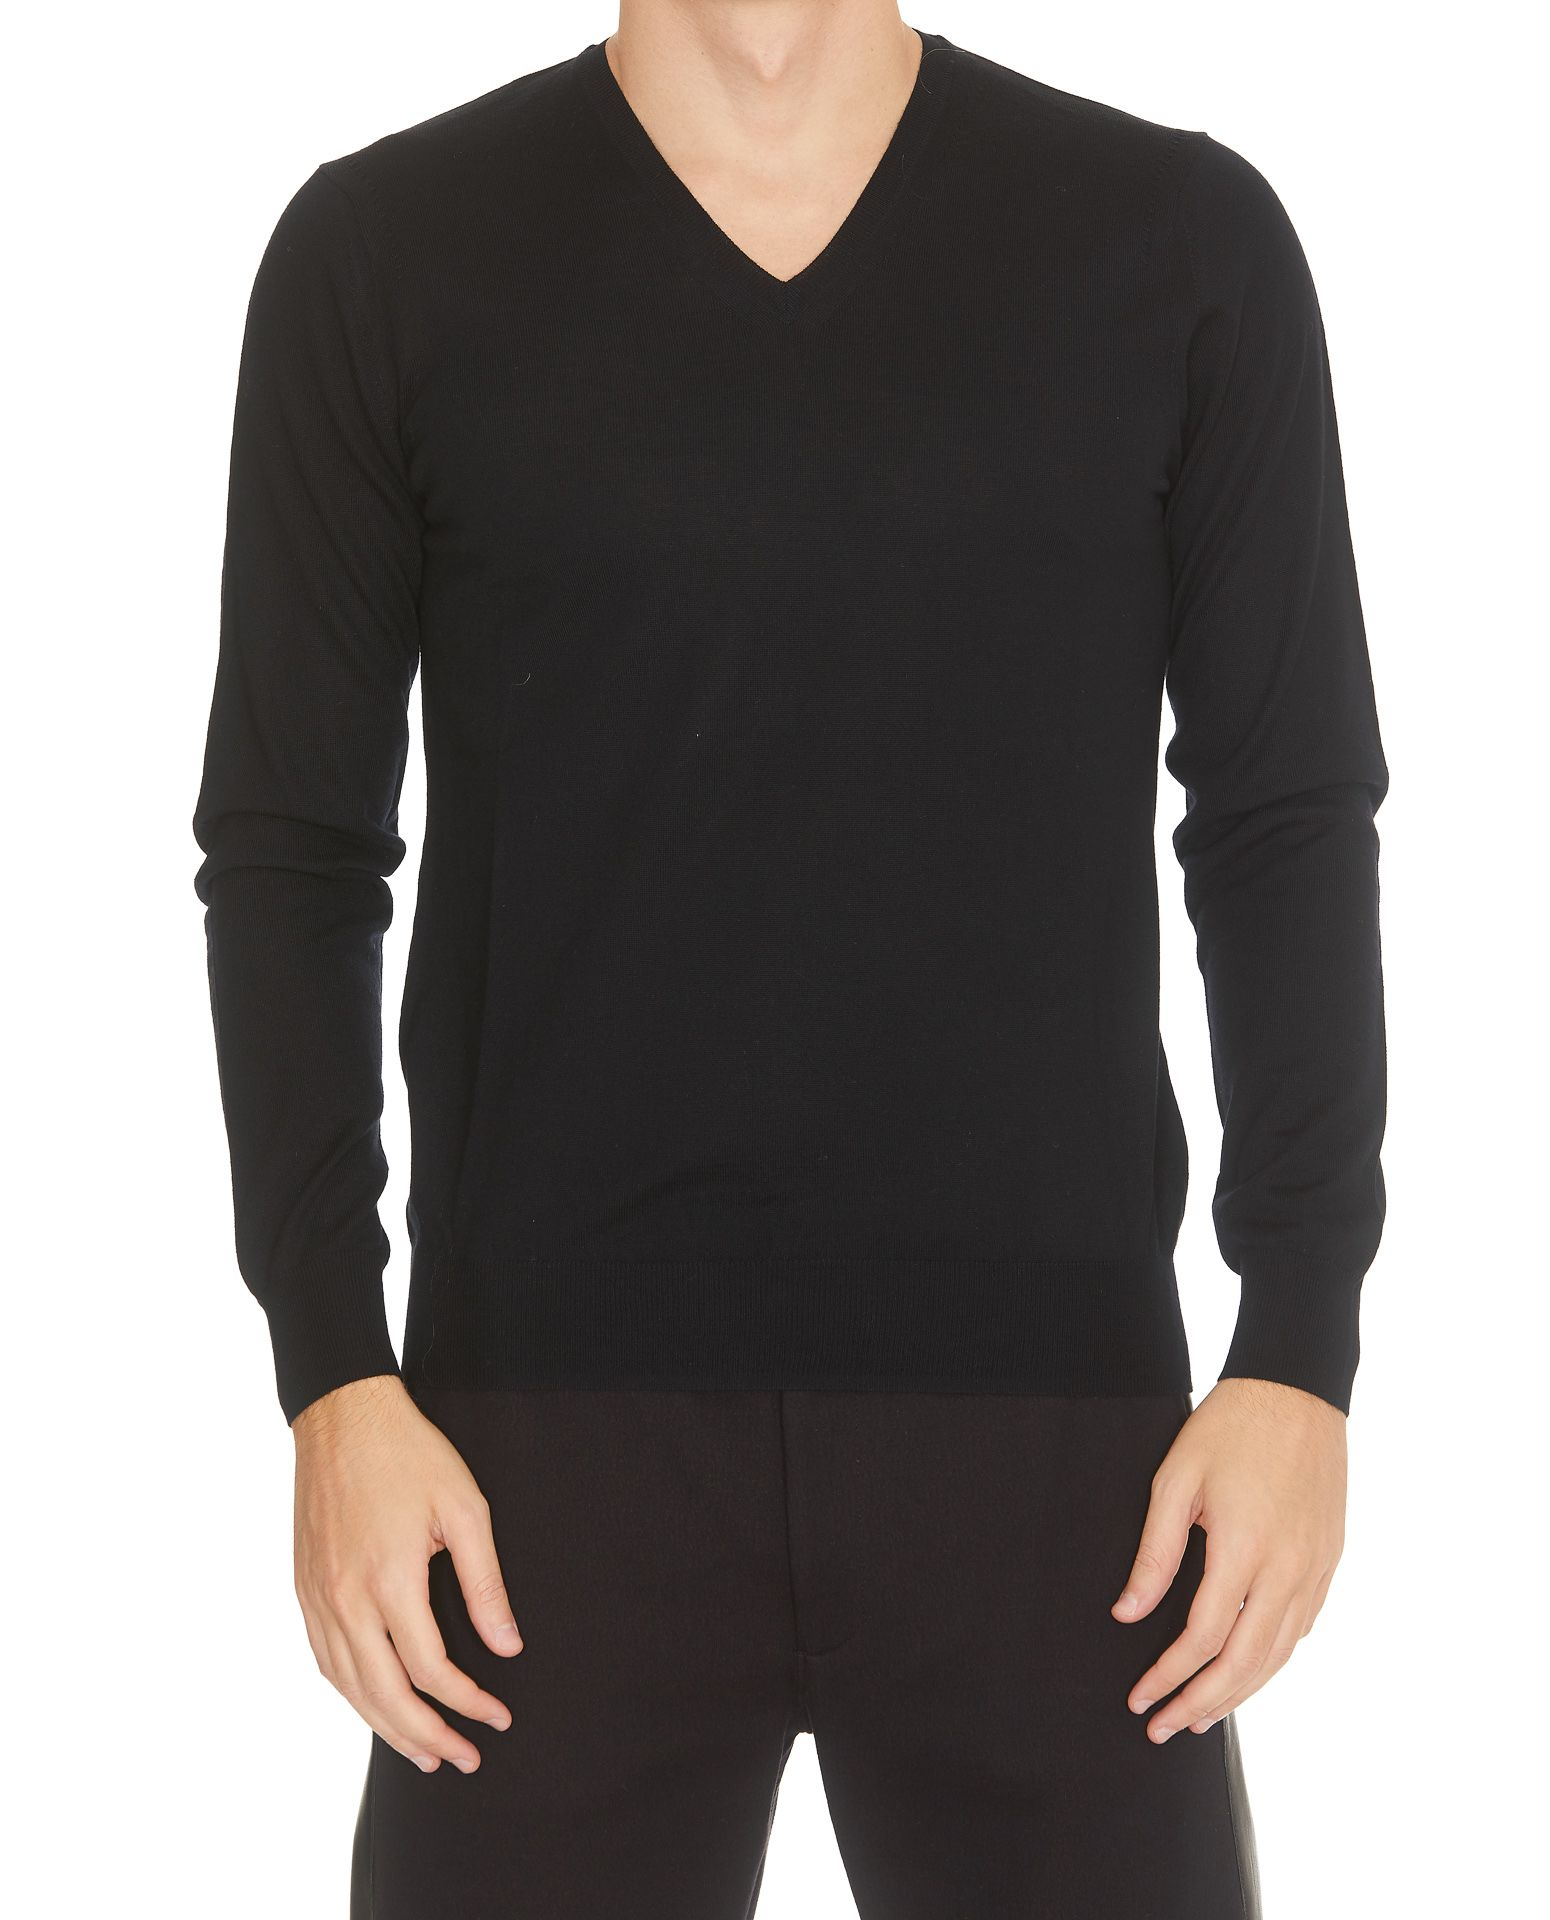 HŌSIO Sweater in Black